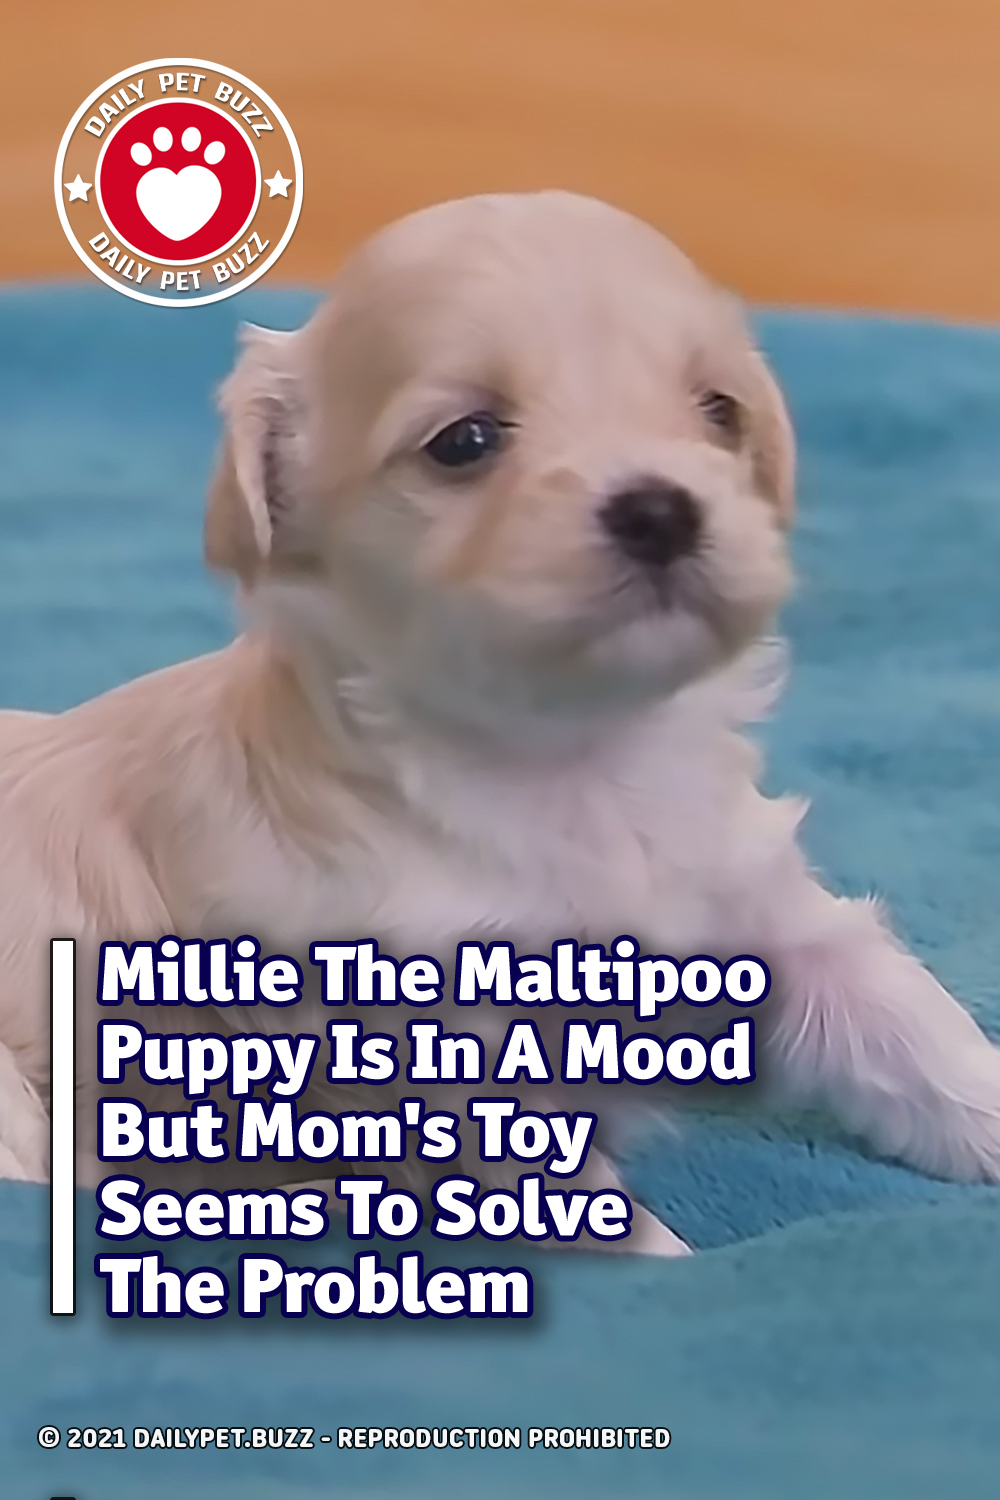 Millie The Maltipoo Puppy Is In A Mood But Mom\'s Toy Seems To Solve The Problem